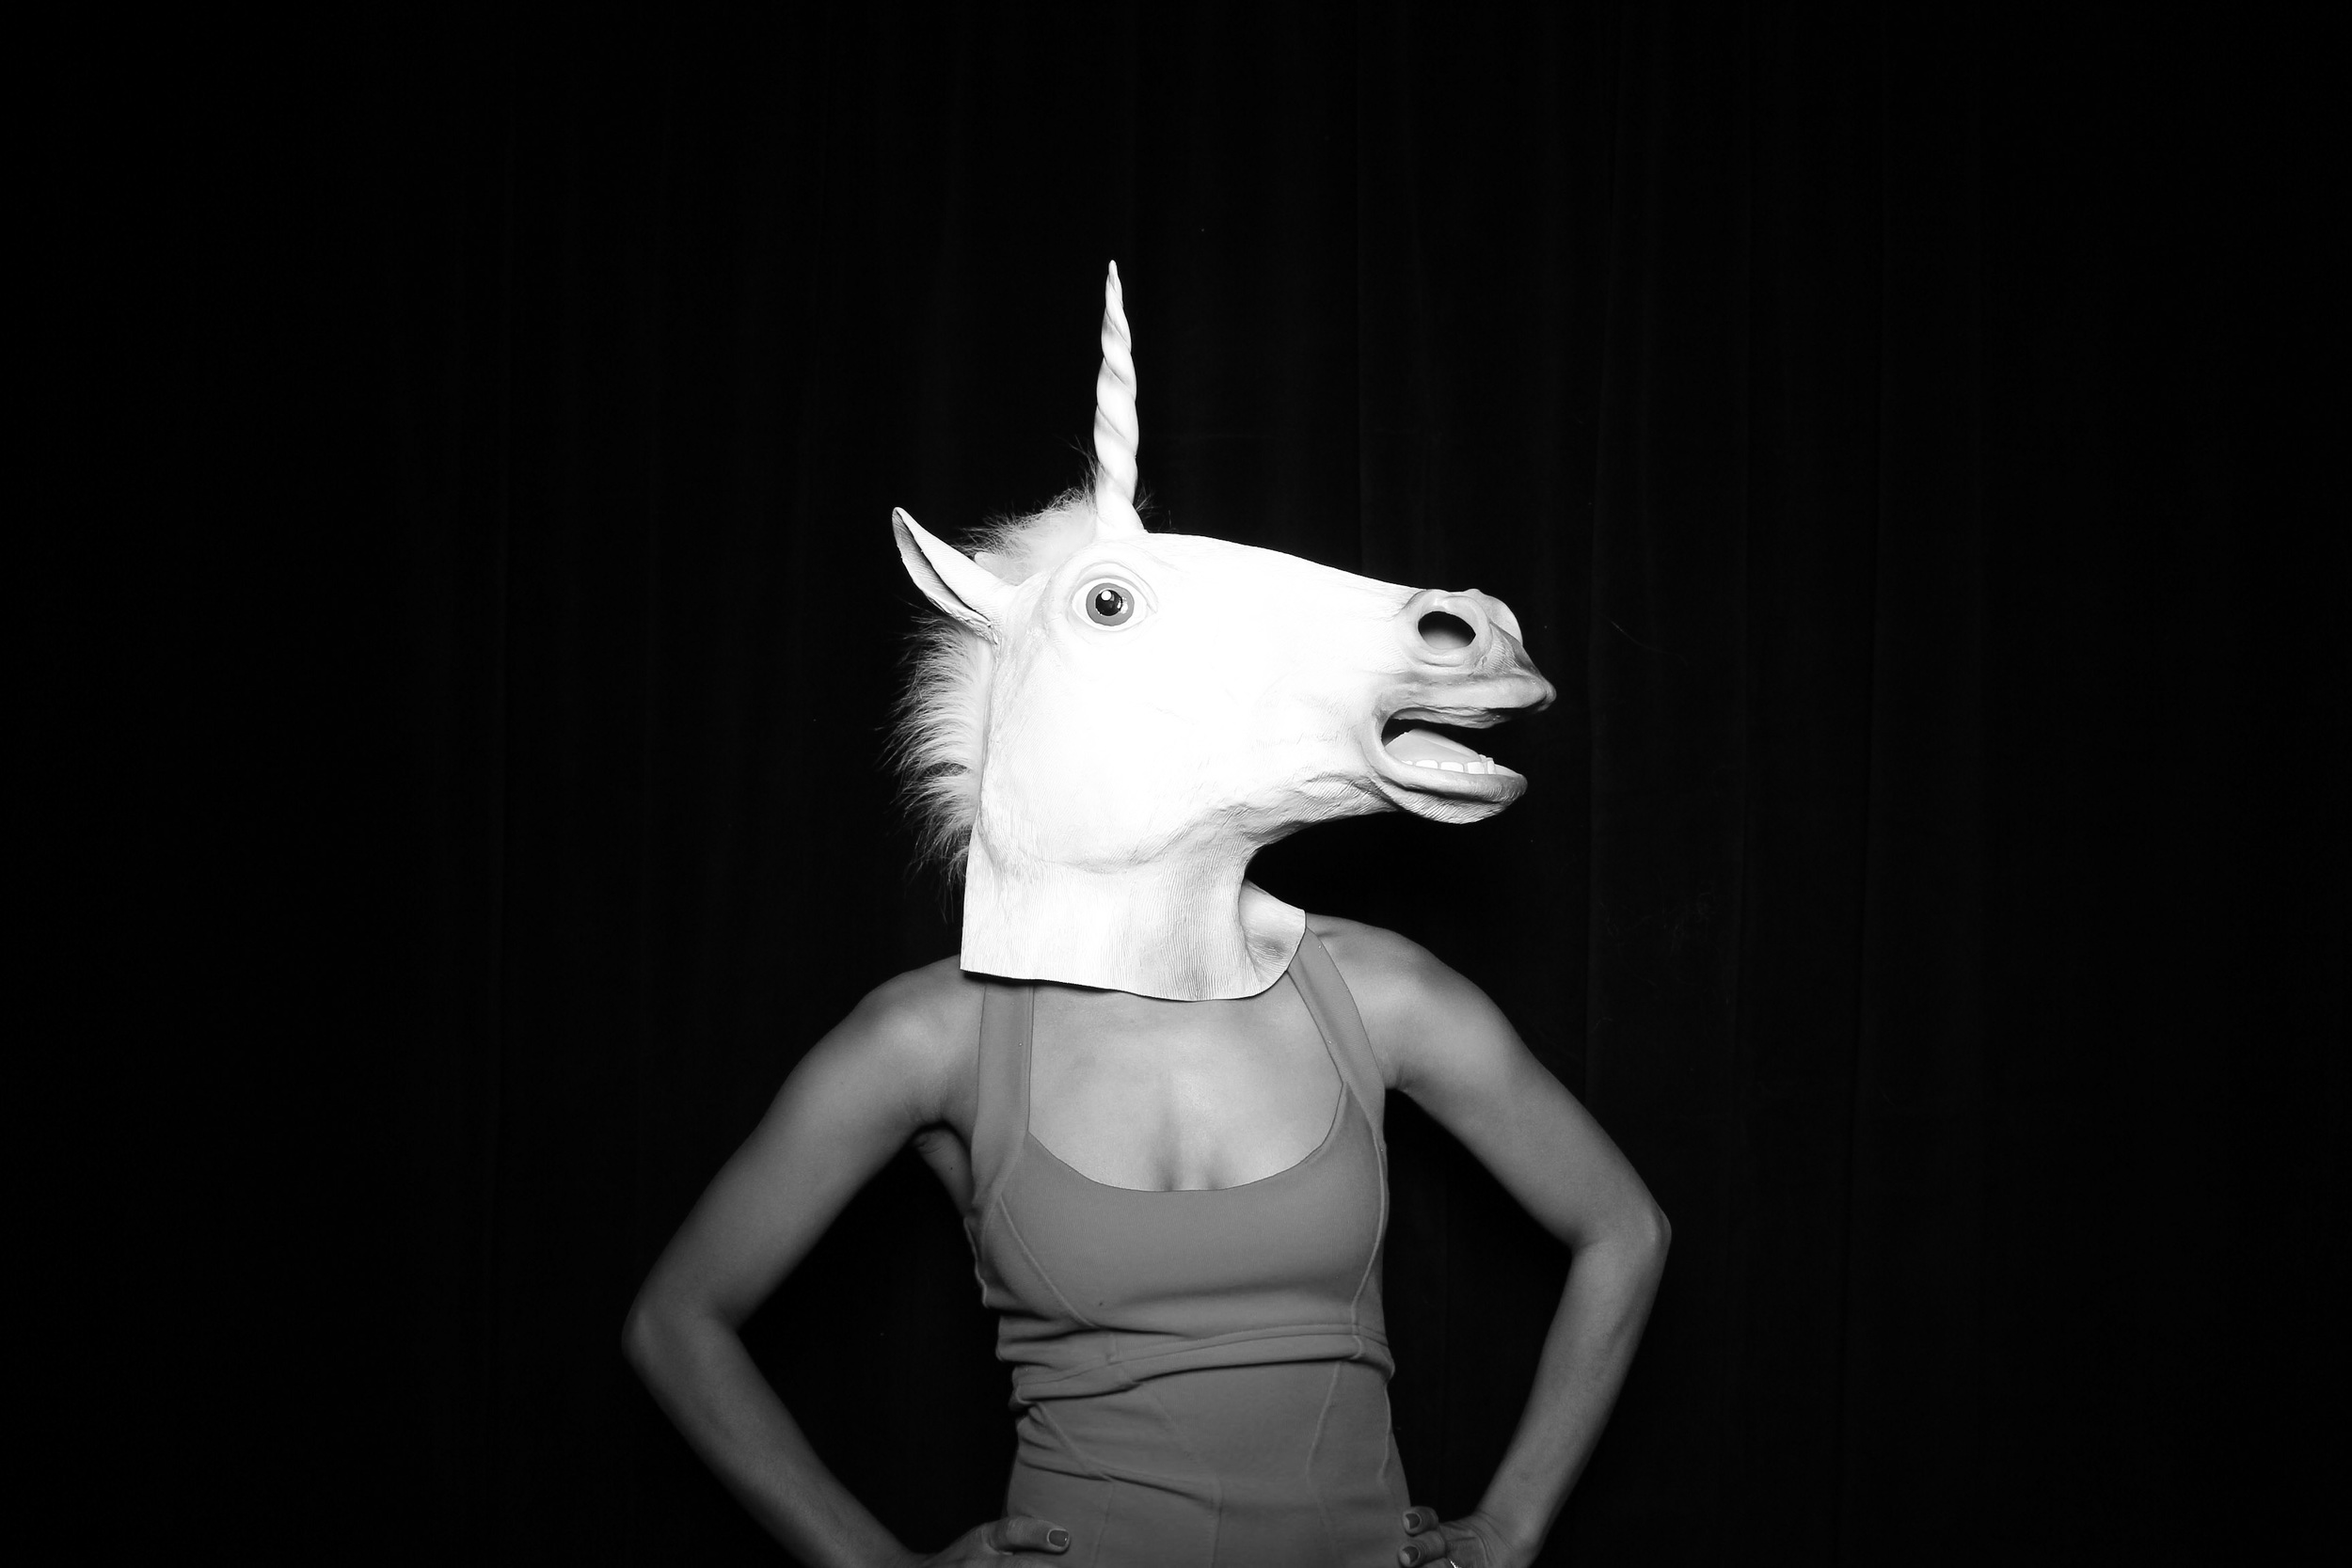 An epic photo booth portrait of a women with a unicorn mask on! Taken at Venue One Chicago.